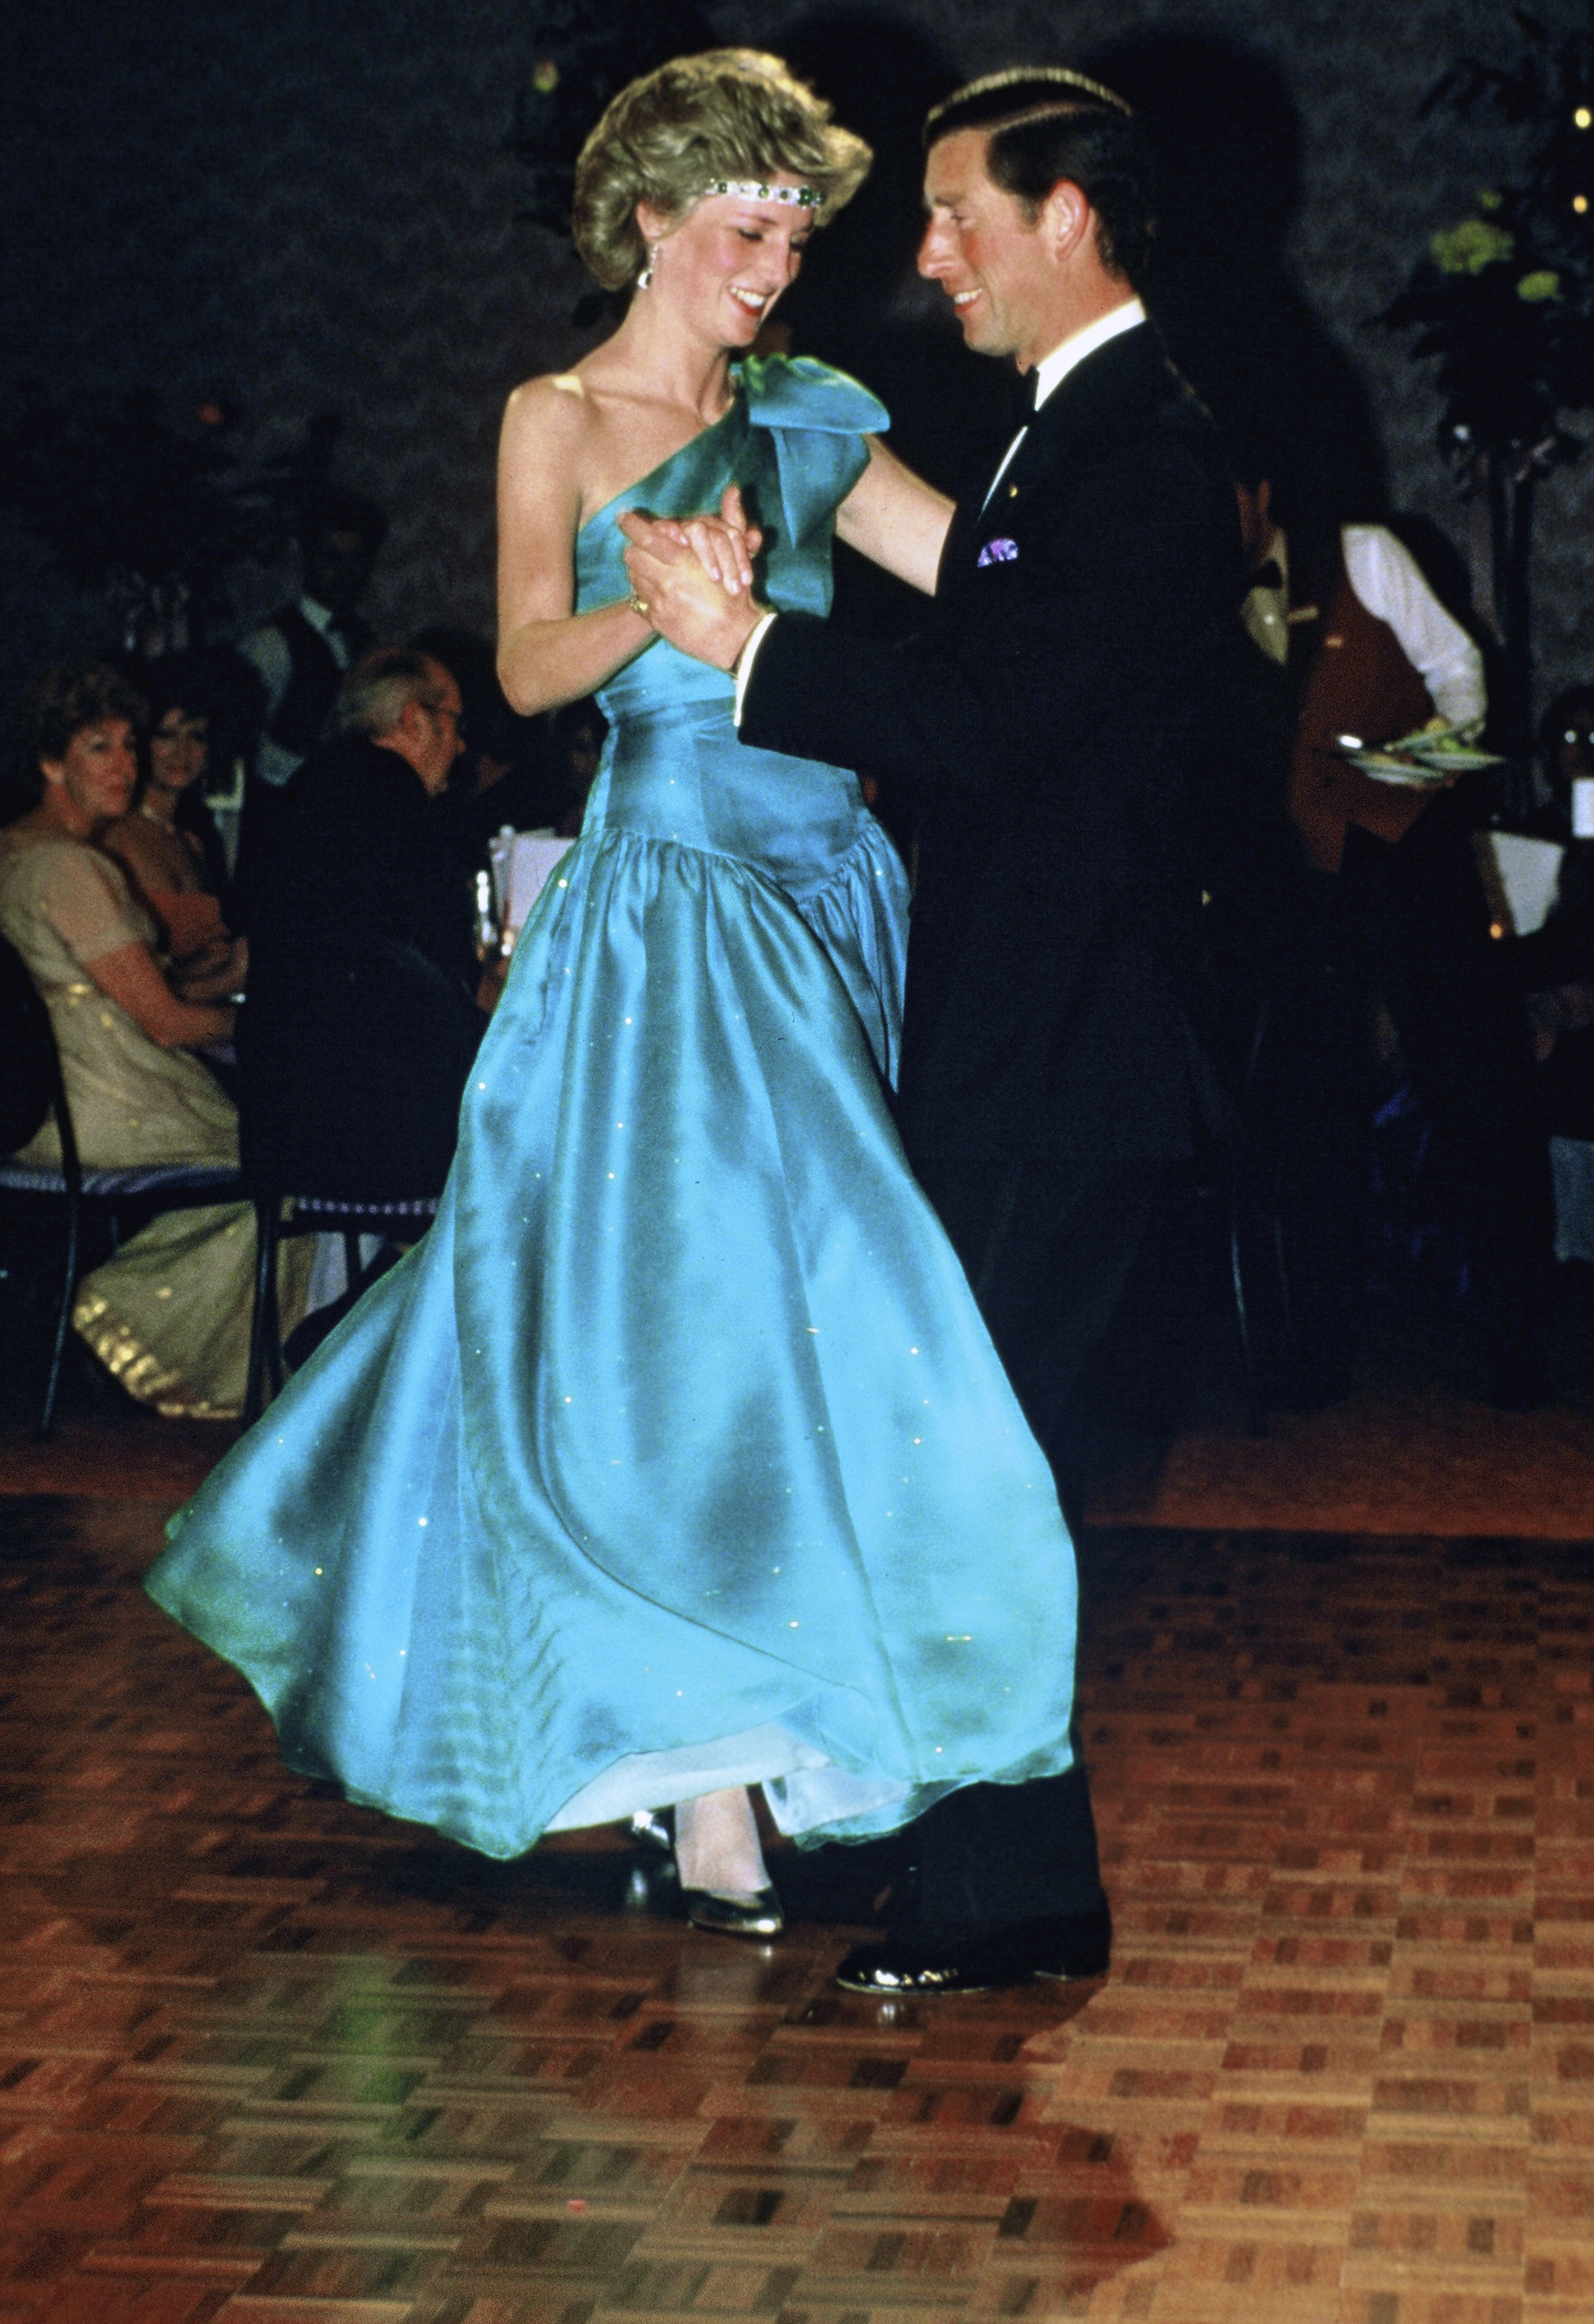 Princess Diana didn't shy away from bold fashion choices, often selecting dresses in vibrant colors. Here, her teal gown was nicely complemented by her repurposing a choker from the royal family as a tiara of sorts.